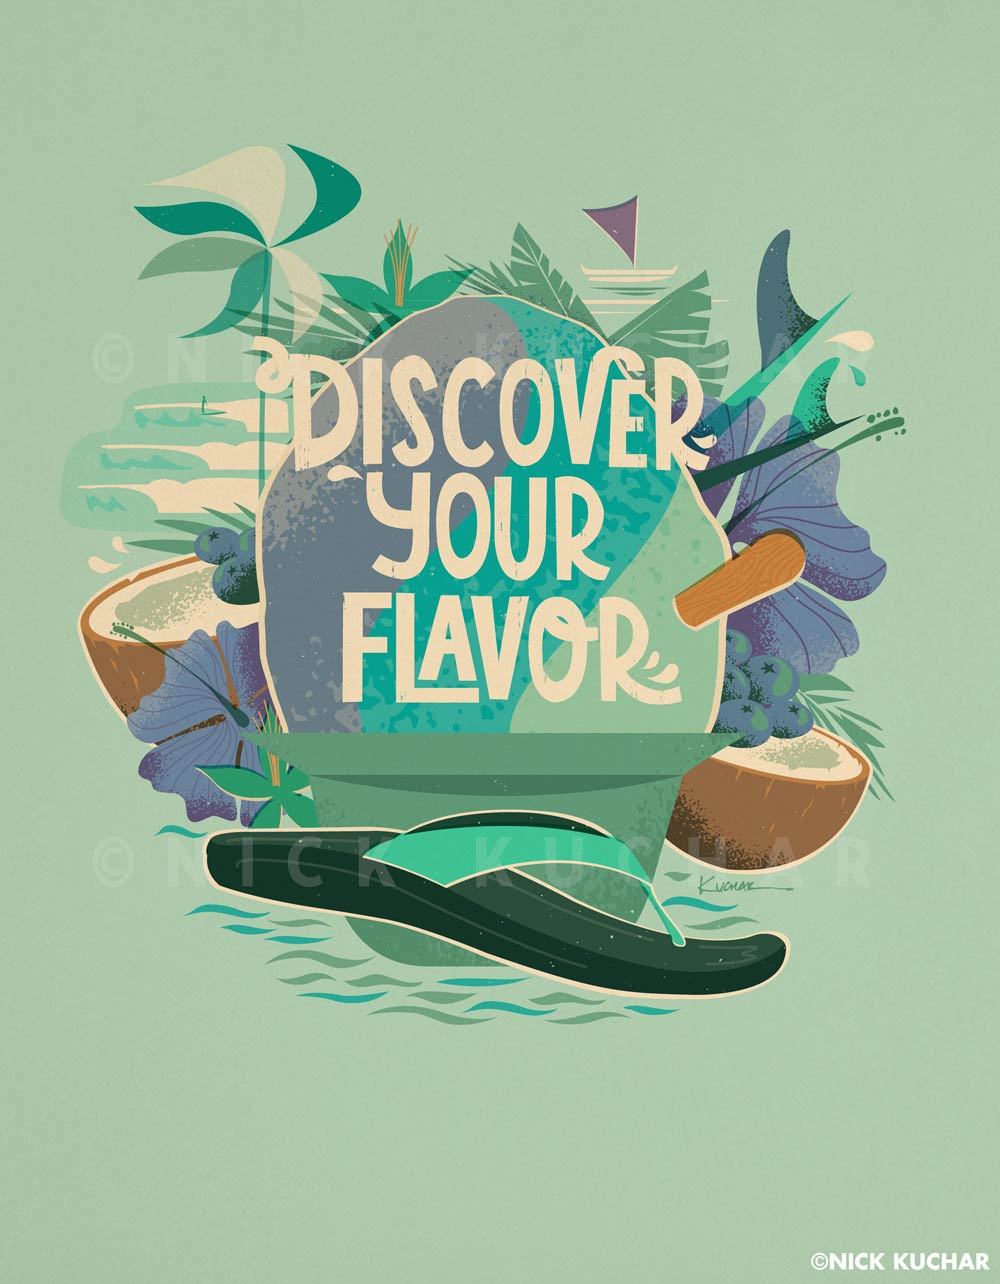 Nick Kuchar Discover Your Flavor digital campaign artwork